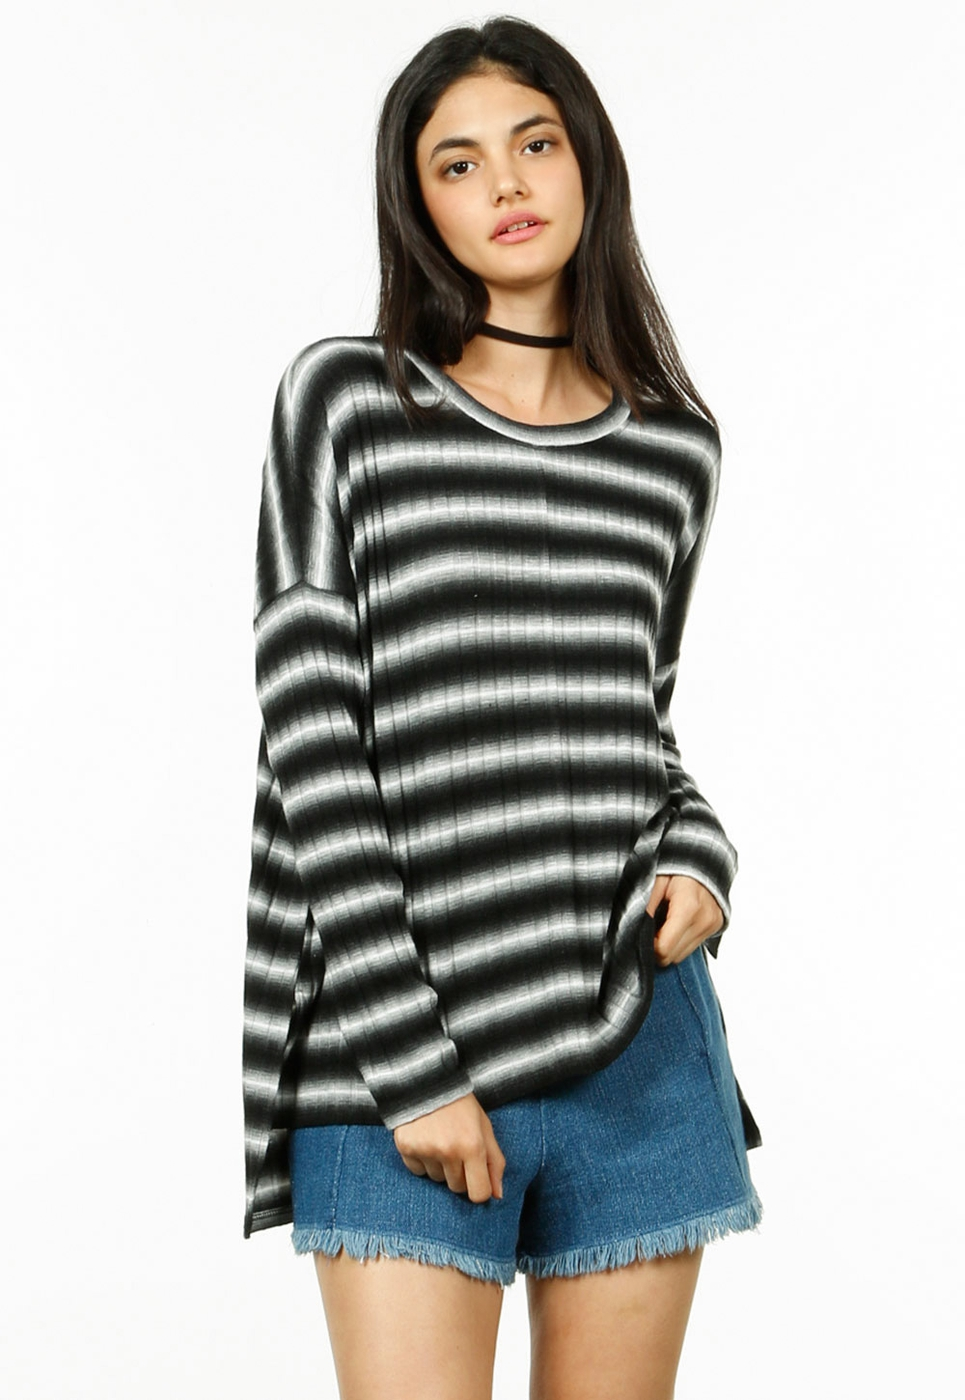 OMBRE 9X4 RIB STRIPE LONG SLV TOP - orangeshine.com